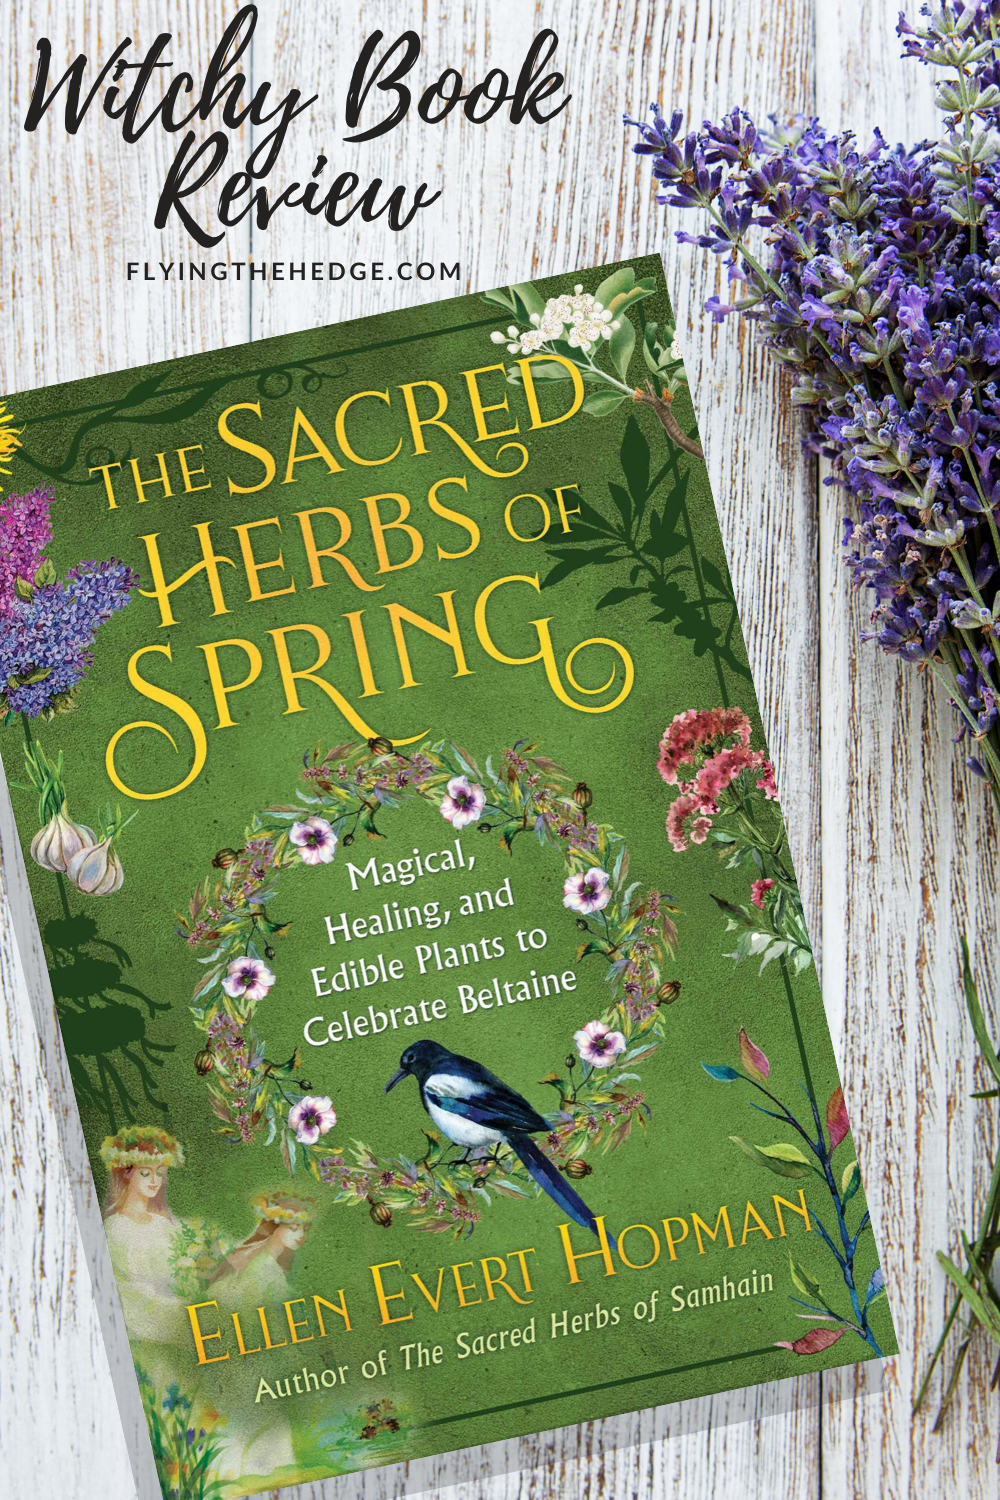 Beltane, sabbat, herb magic, herbal remedies, book review, witchy, witchcraft, herb craft, magical herbs